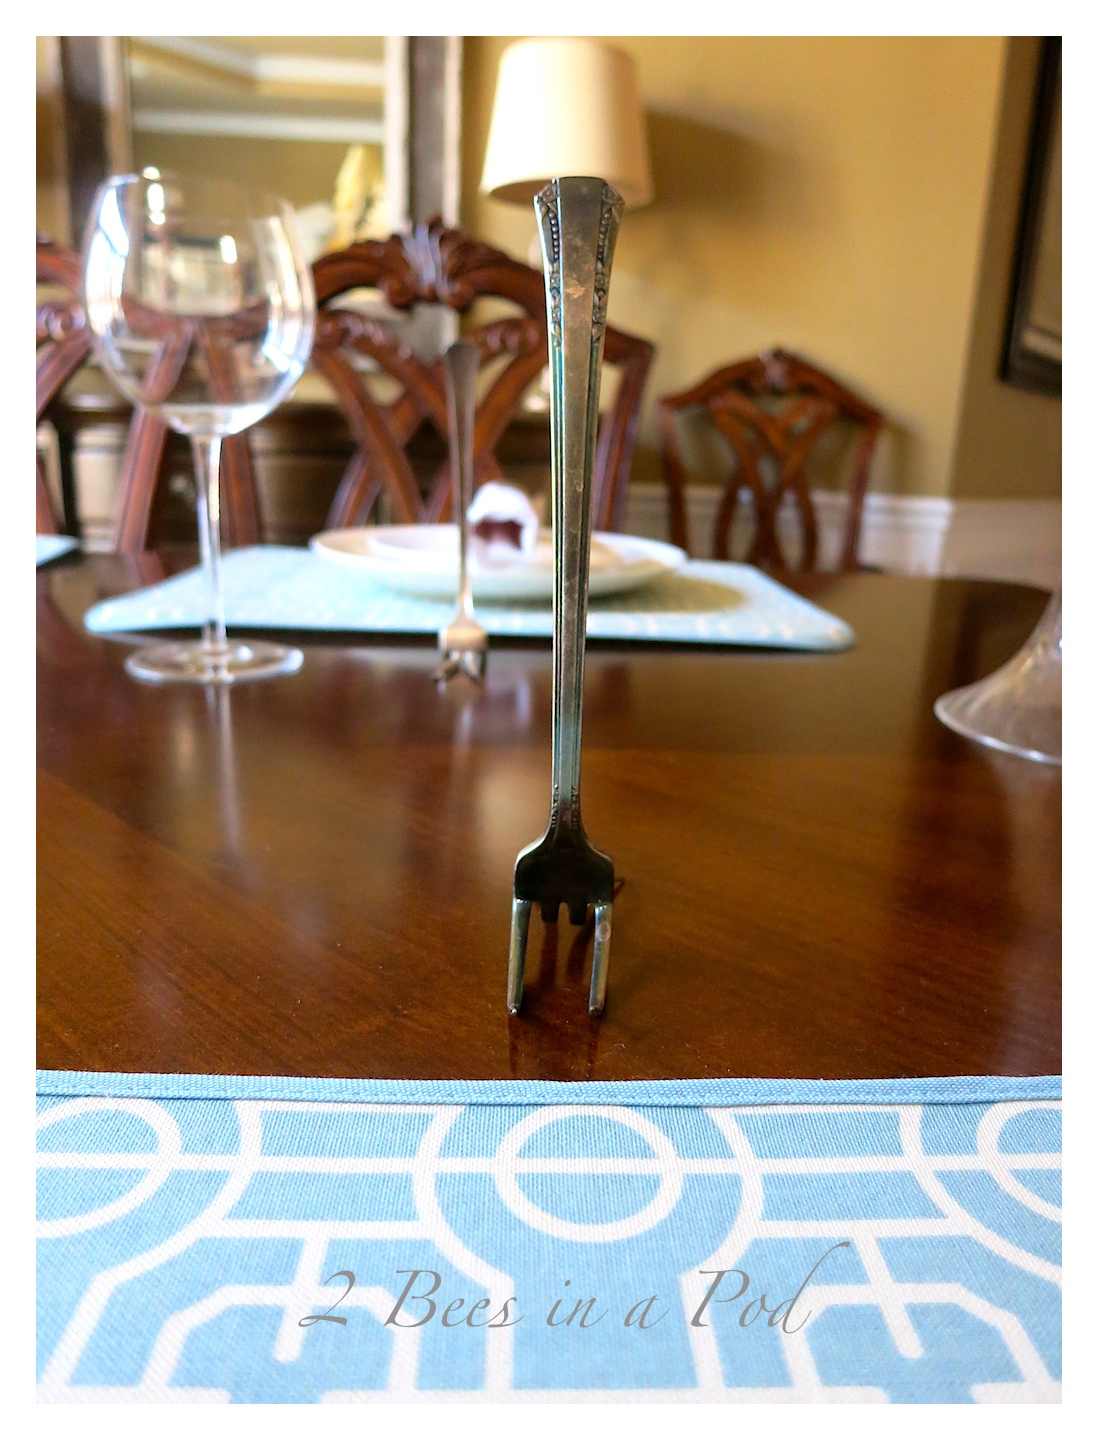 DIY Place card holder using vintage silverware. Easy project that took just minutes to create.